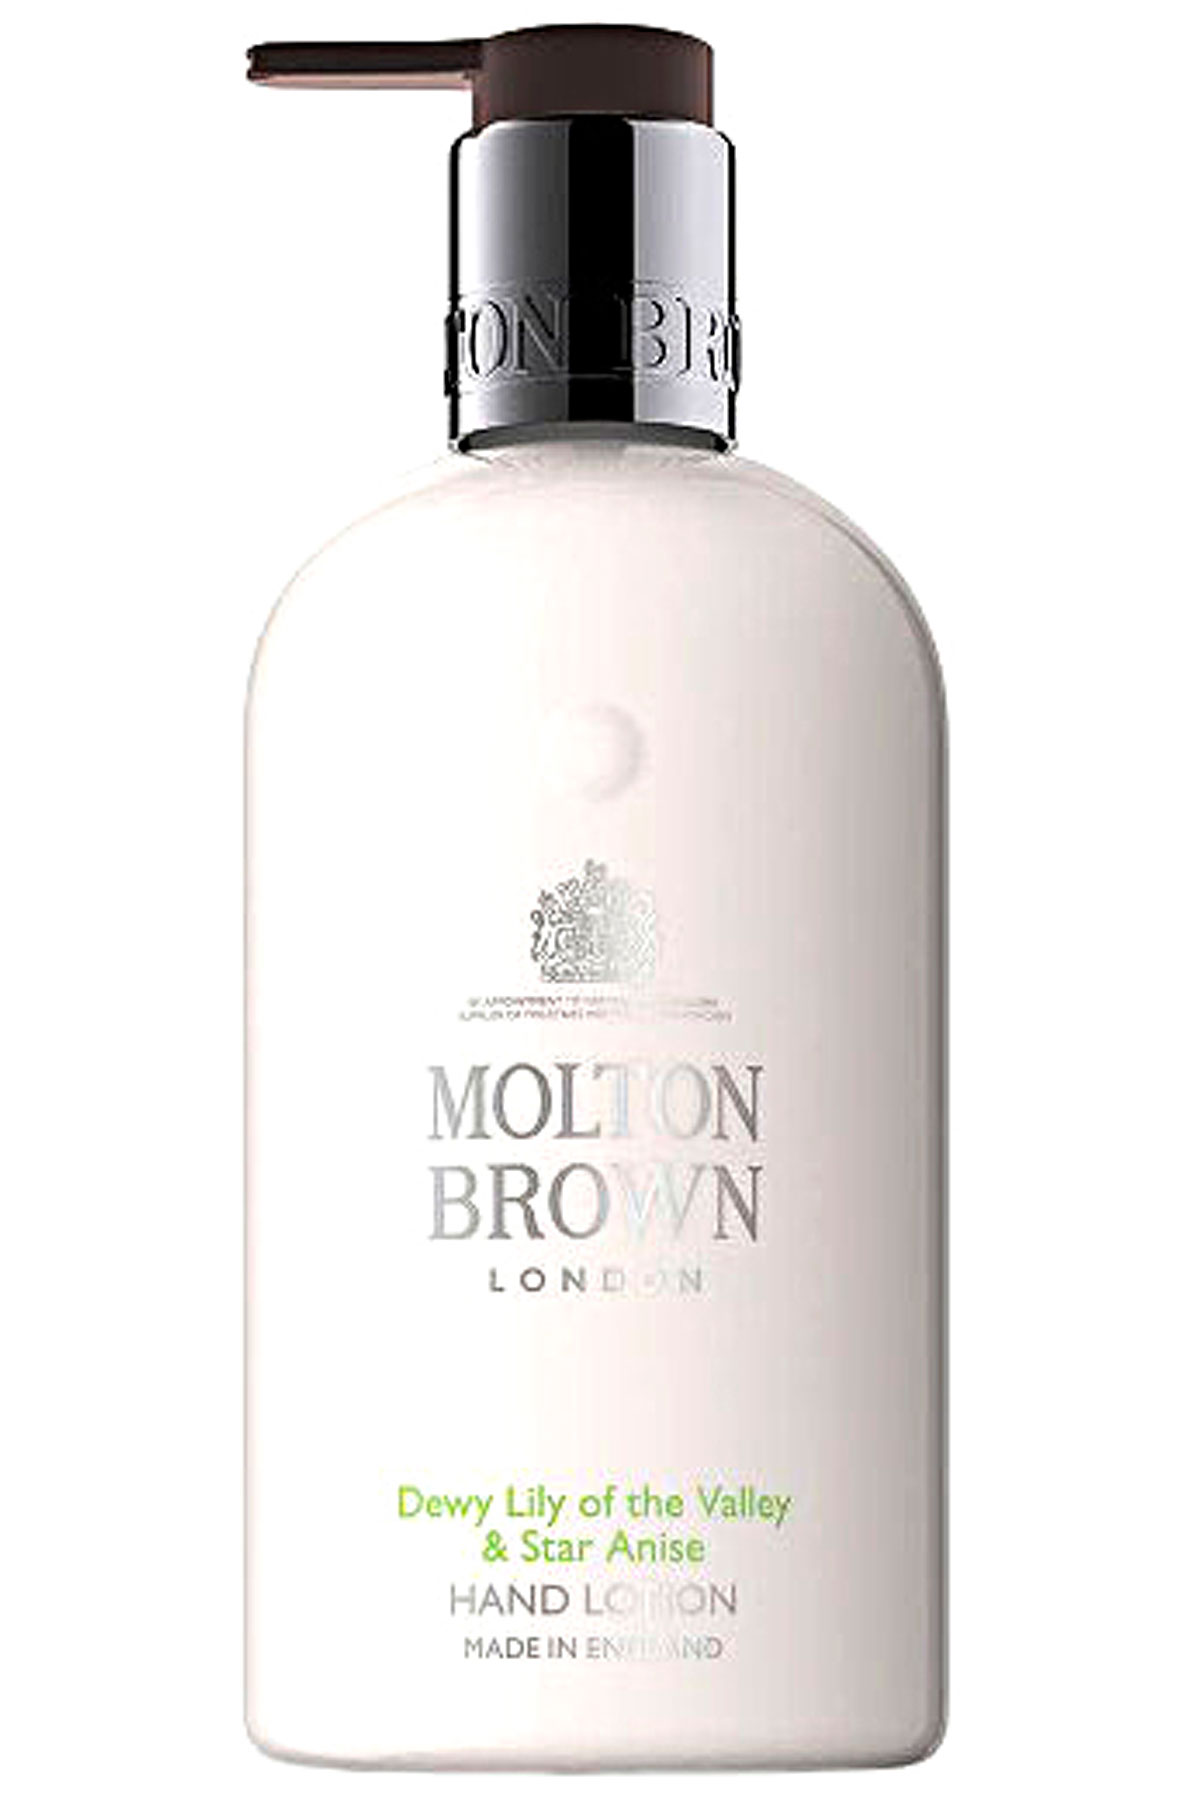 Molton Brown Beauty for Women, Dewy Lily Of The Valley & Star Anise - Hand Lotion - 300 Ml, 2019, 300 ml